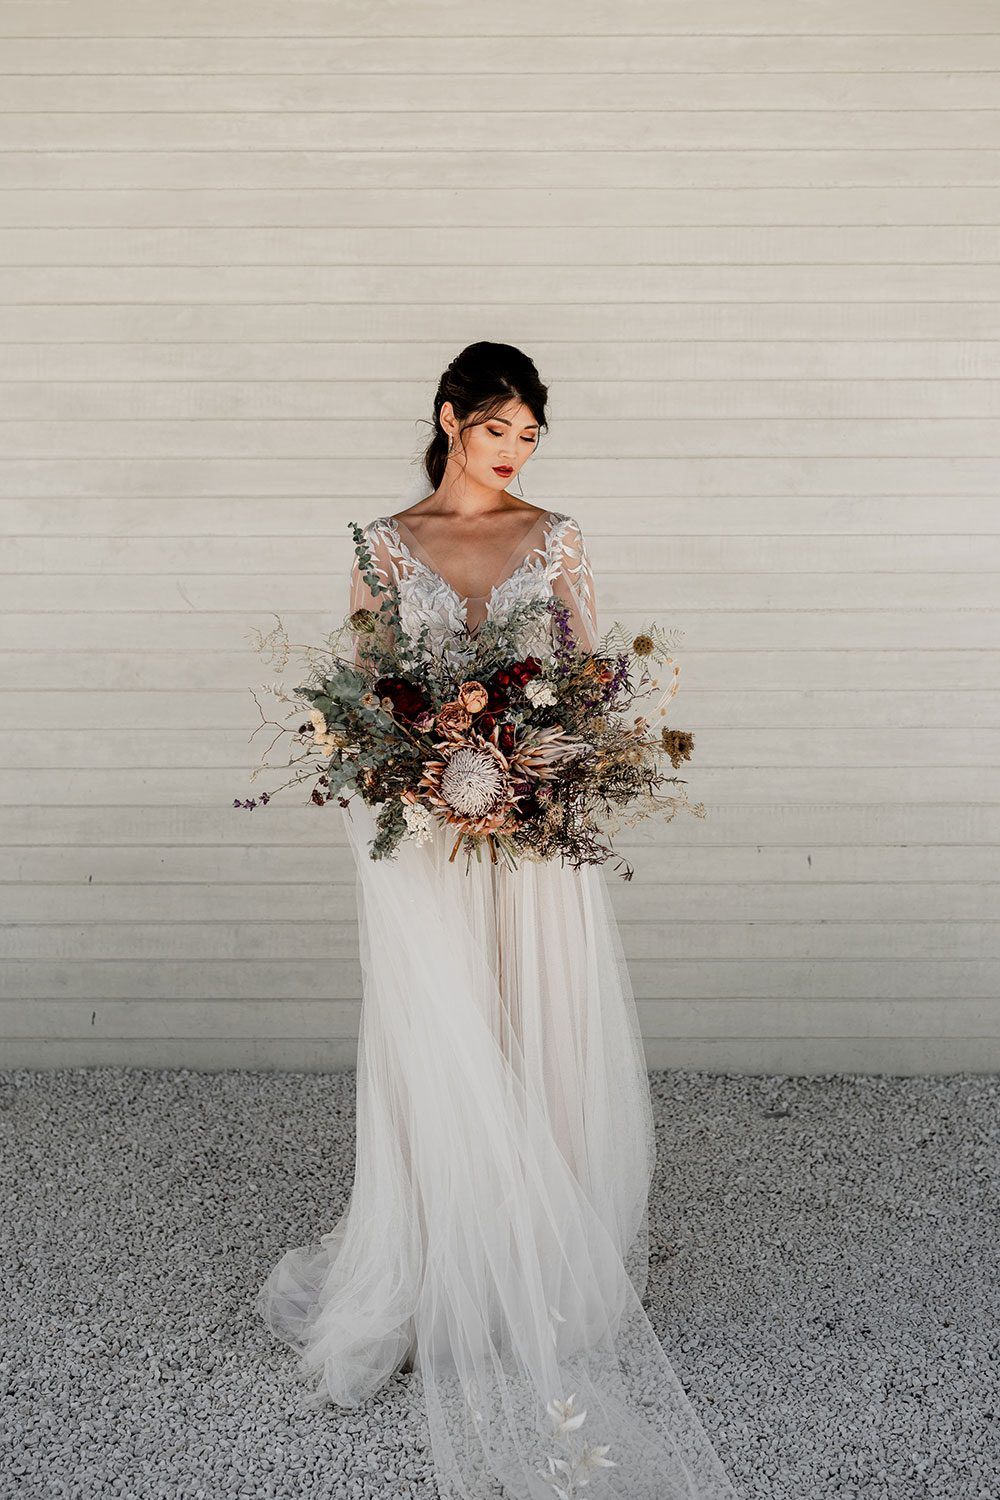 Bride wearing bespoke designer wedding dress by Vinka Bridal Boutique NZ, adorned with delicate applique lace and puffed sleeves - holding bouquet